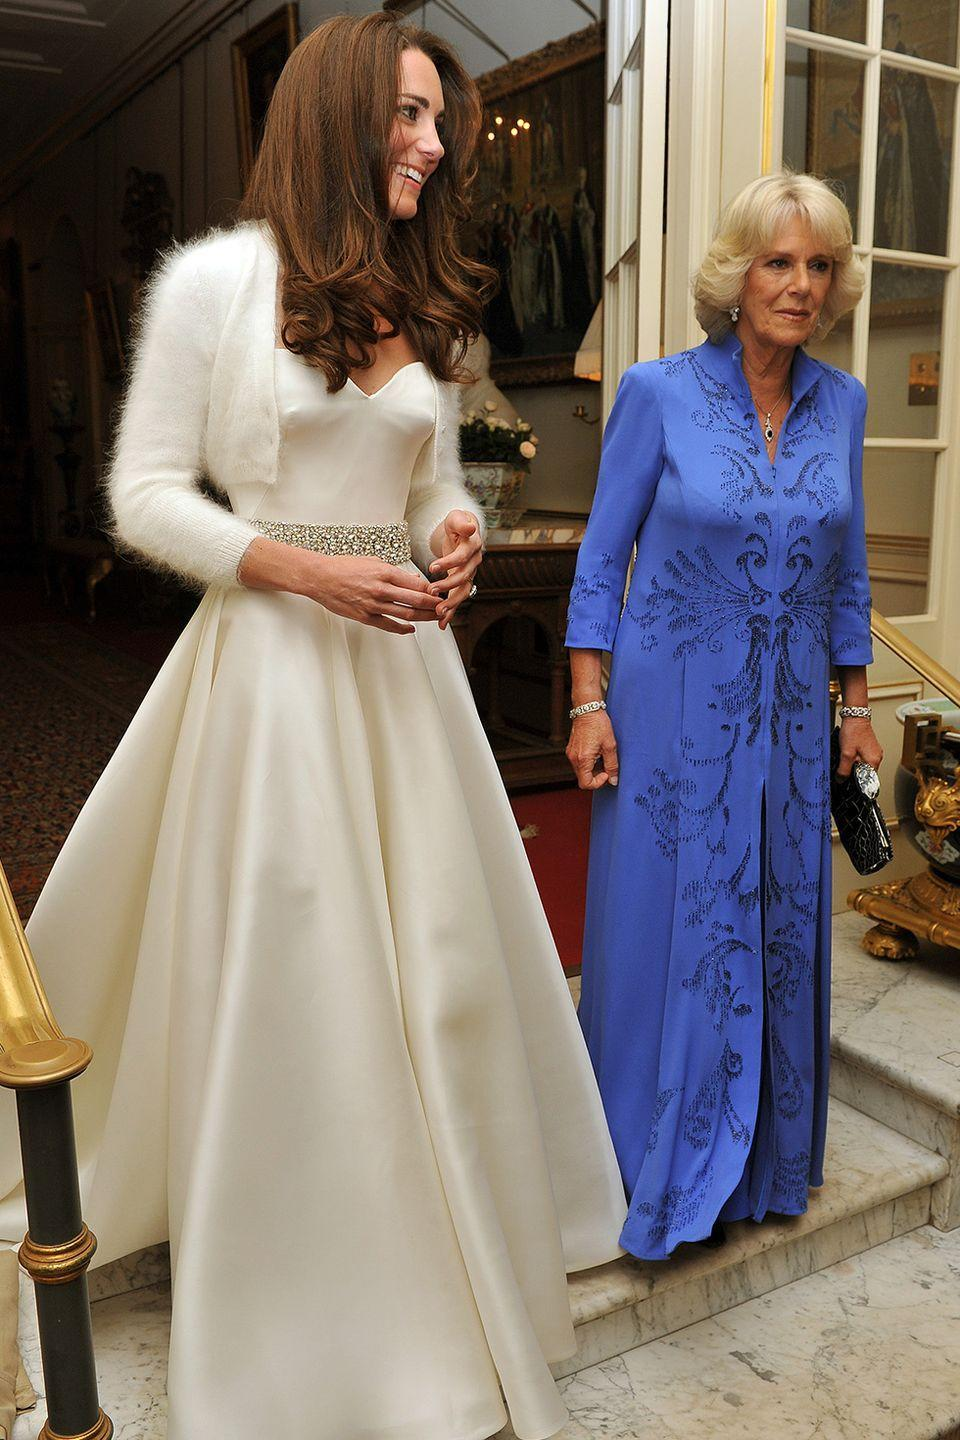 """<p>Because if you're royalty, you can have as many wedding dresses as you want. The new Duchess of Cambridge changed into a simpler white satin dress for her wedding reception, complete with an elegant beaded belt and angora cardigan. </p><p><strong>RELATED</strong>: <a href=""""https://www.goodhousekeeping.com/beauty/fashion/g4690/kate-middleton-wedding-dress/"""" rel=""""nofollow noopener"""" target=""""_blank"""" data-ylk=""""slk:The 10 Hidden Details in Kate Middleton's Wedding Dress You Totally Missed"""" class=""""link rapid-noclick-resp"""">The 10 Hidden Details in Kate Middleton's Wedding Dress You Totally Missed</a></p>"""